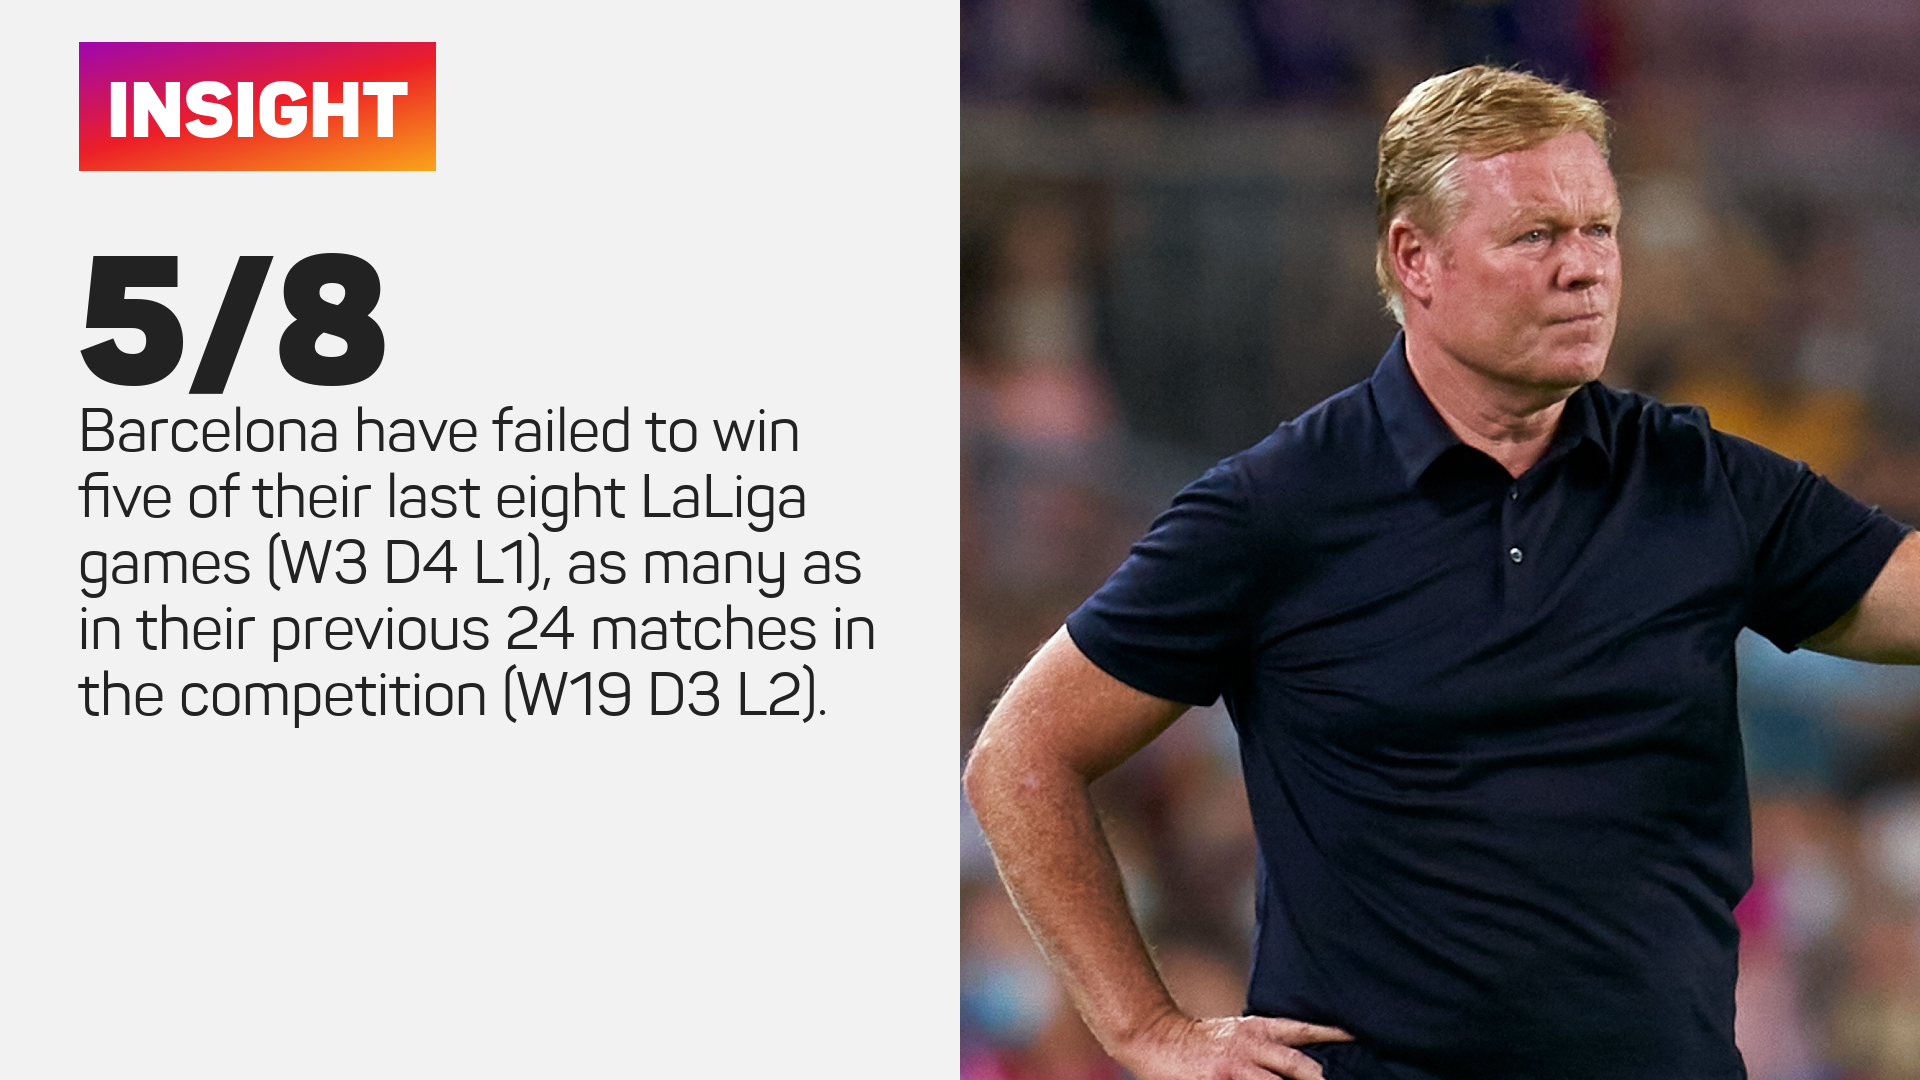 Barcelona have failed to win five of their last eight LaLiga matches